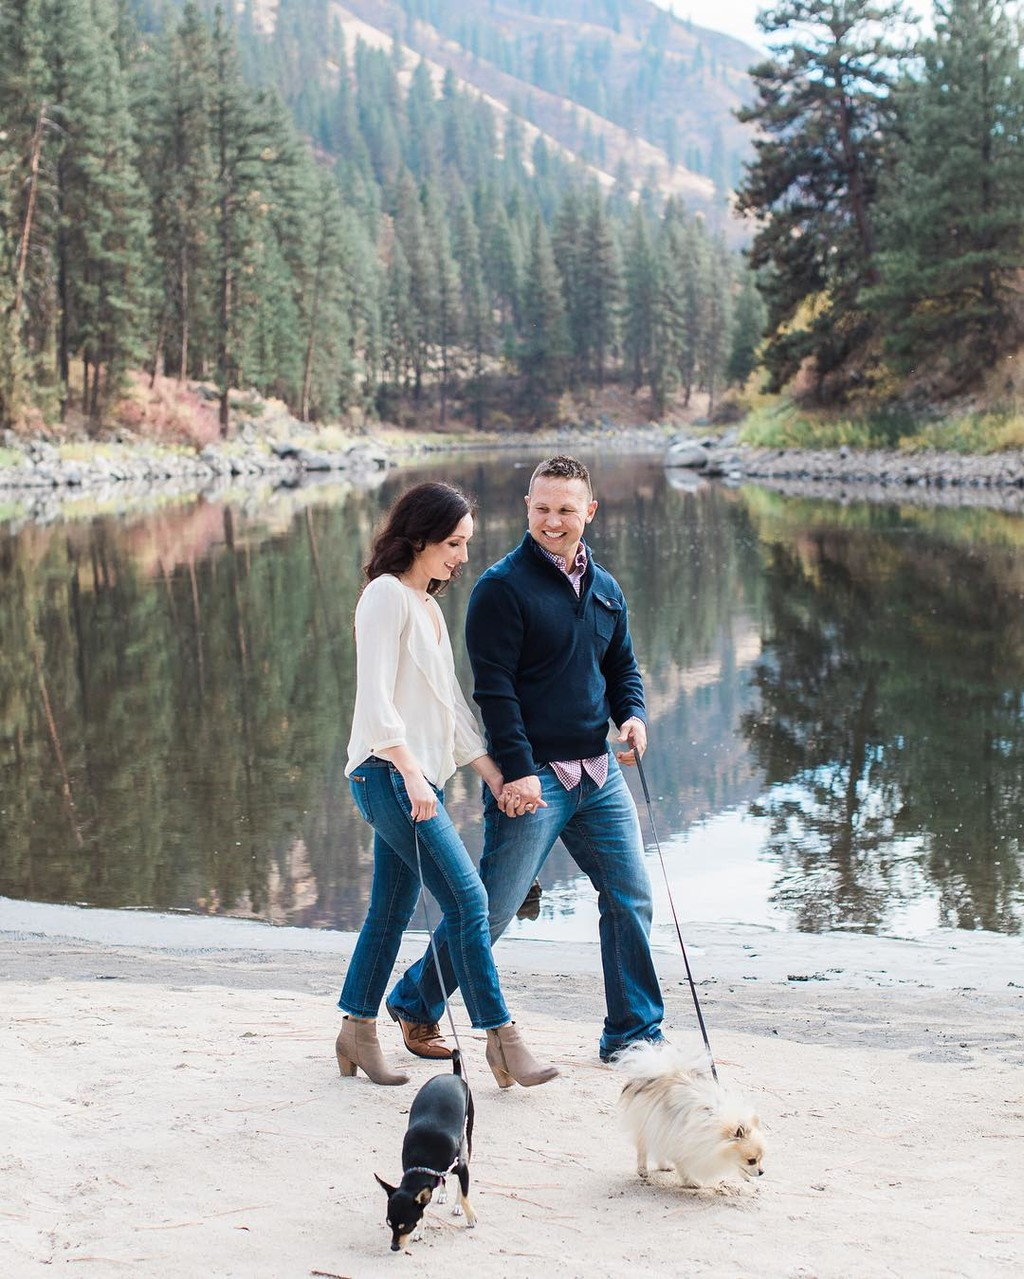 Talk about the sweetest couple! So looking forward to Mike & Heather's wedding in McCall.